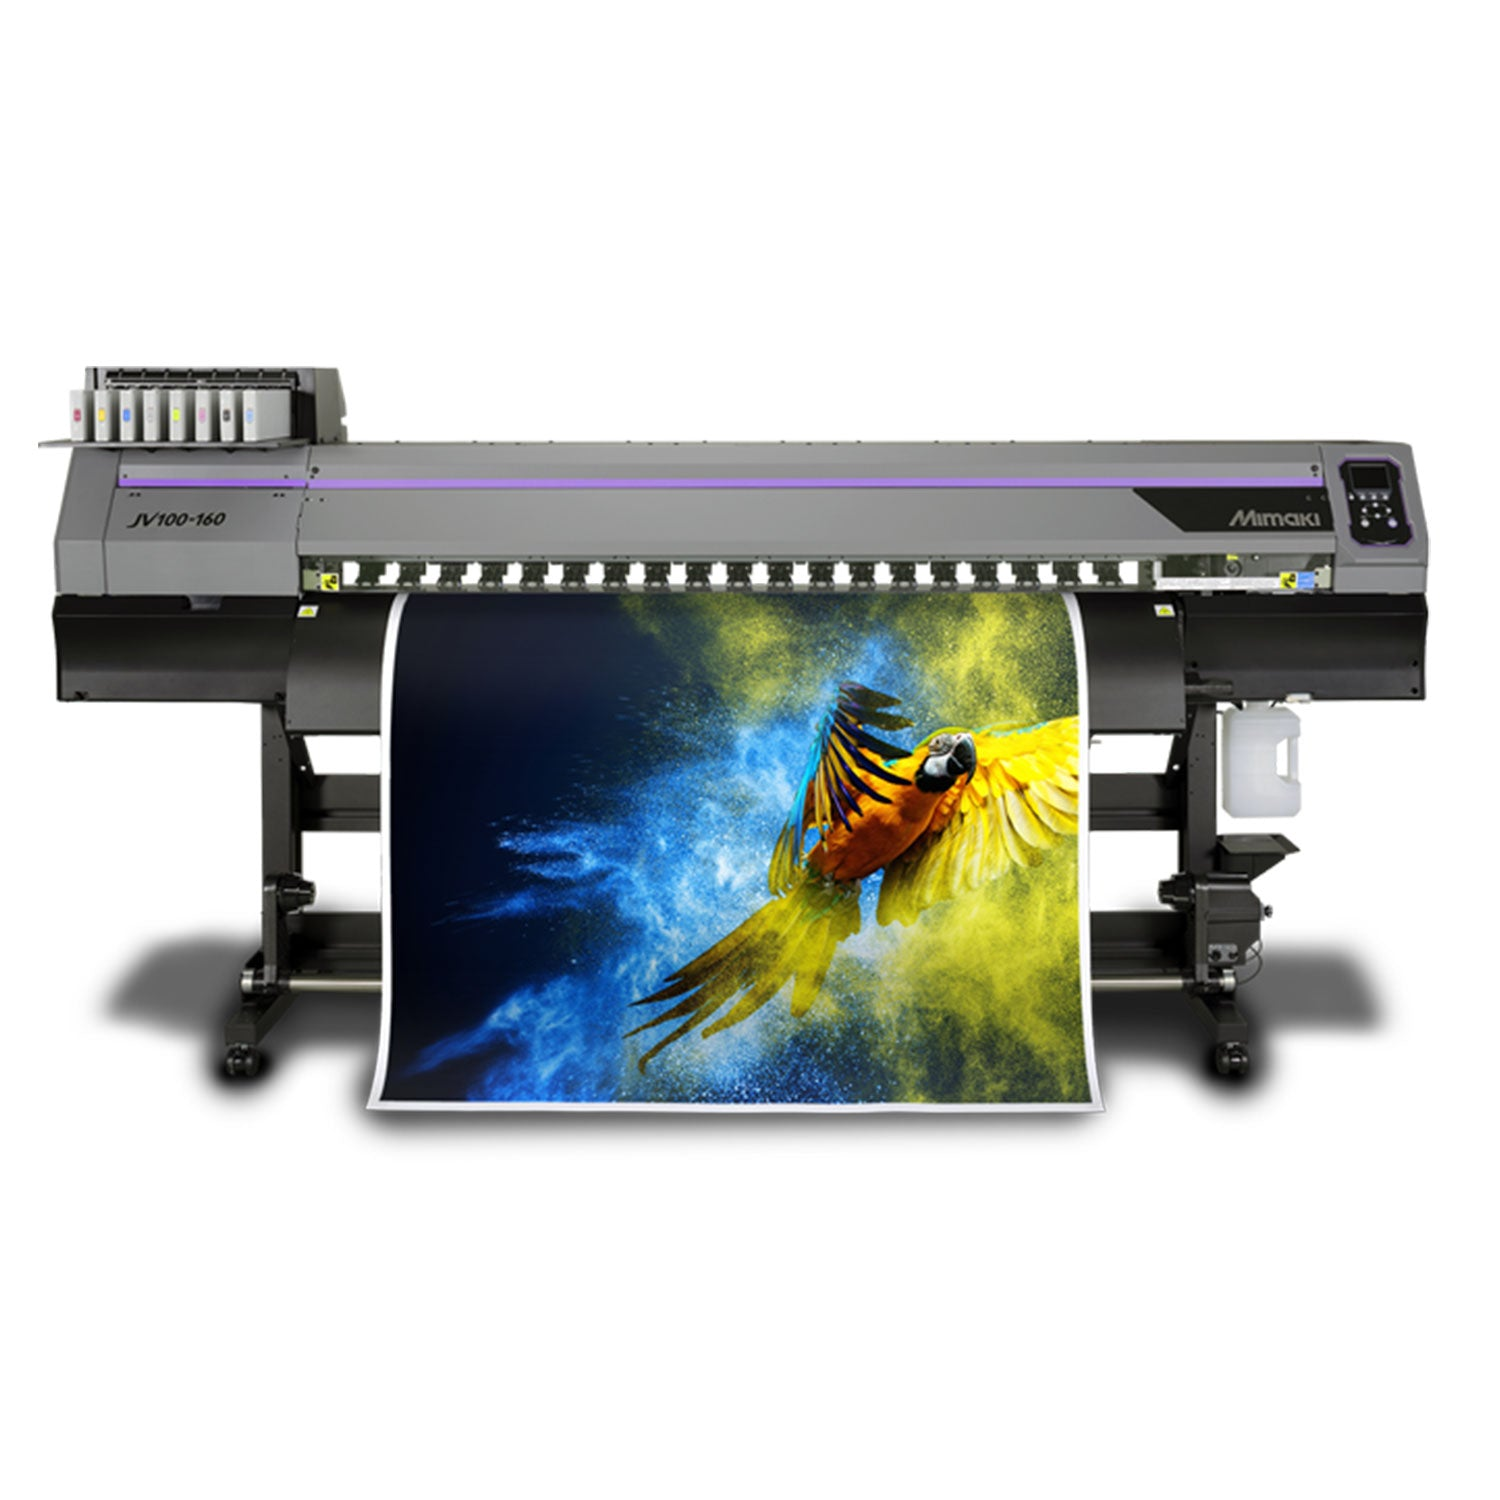 Mimaki JV100-160 Printer